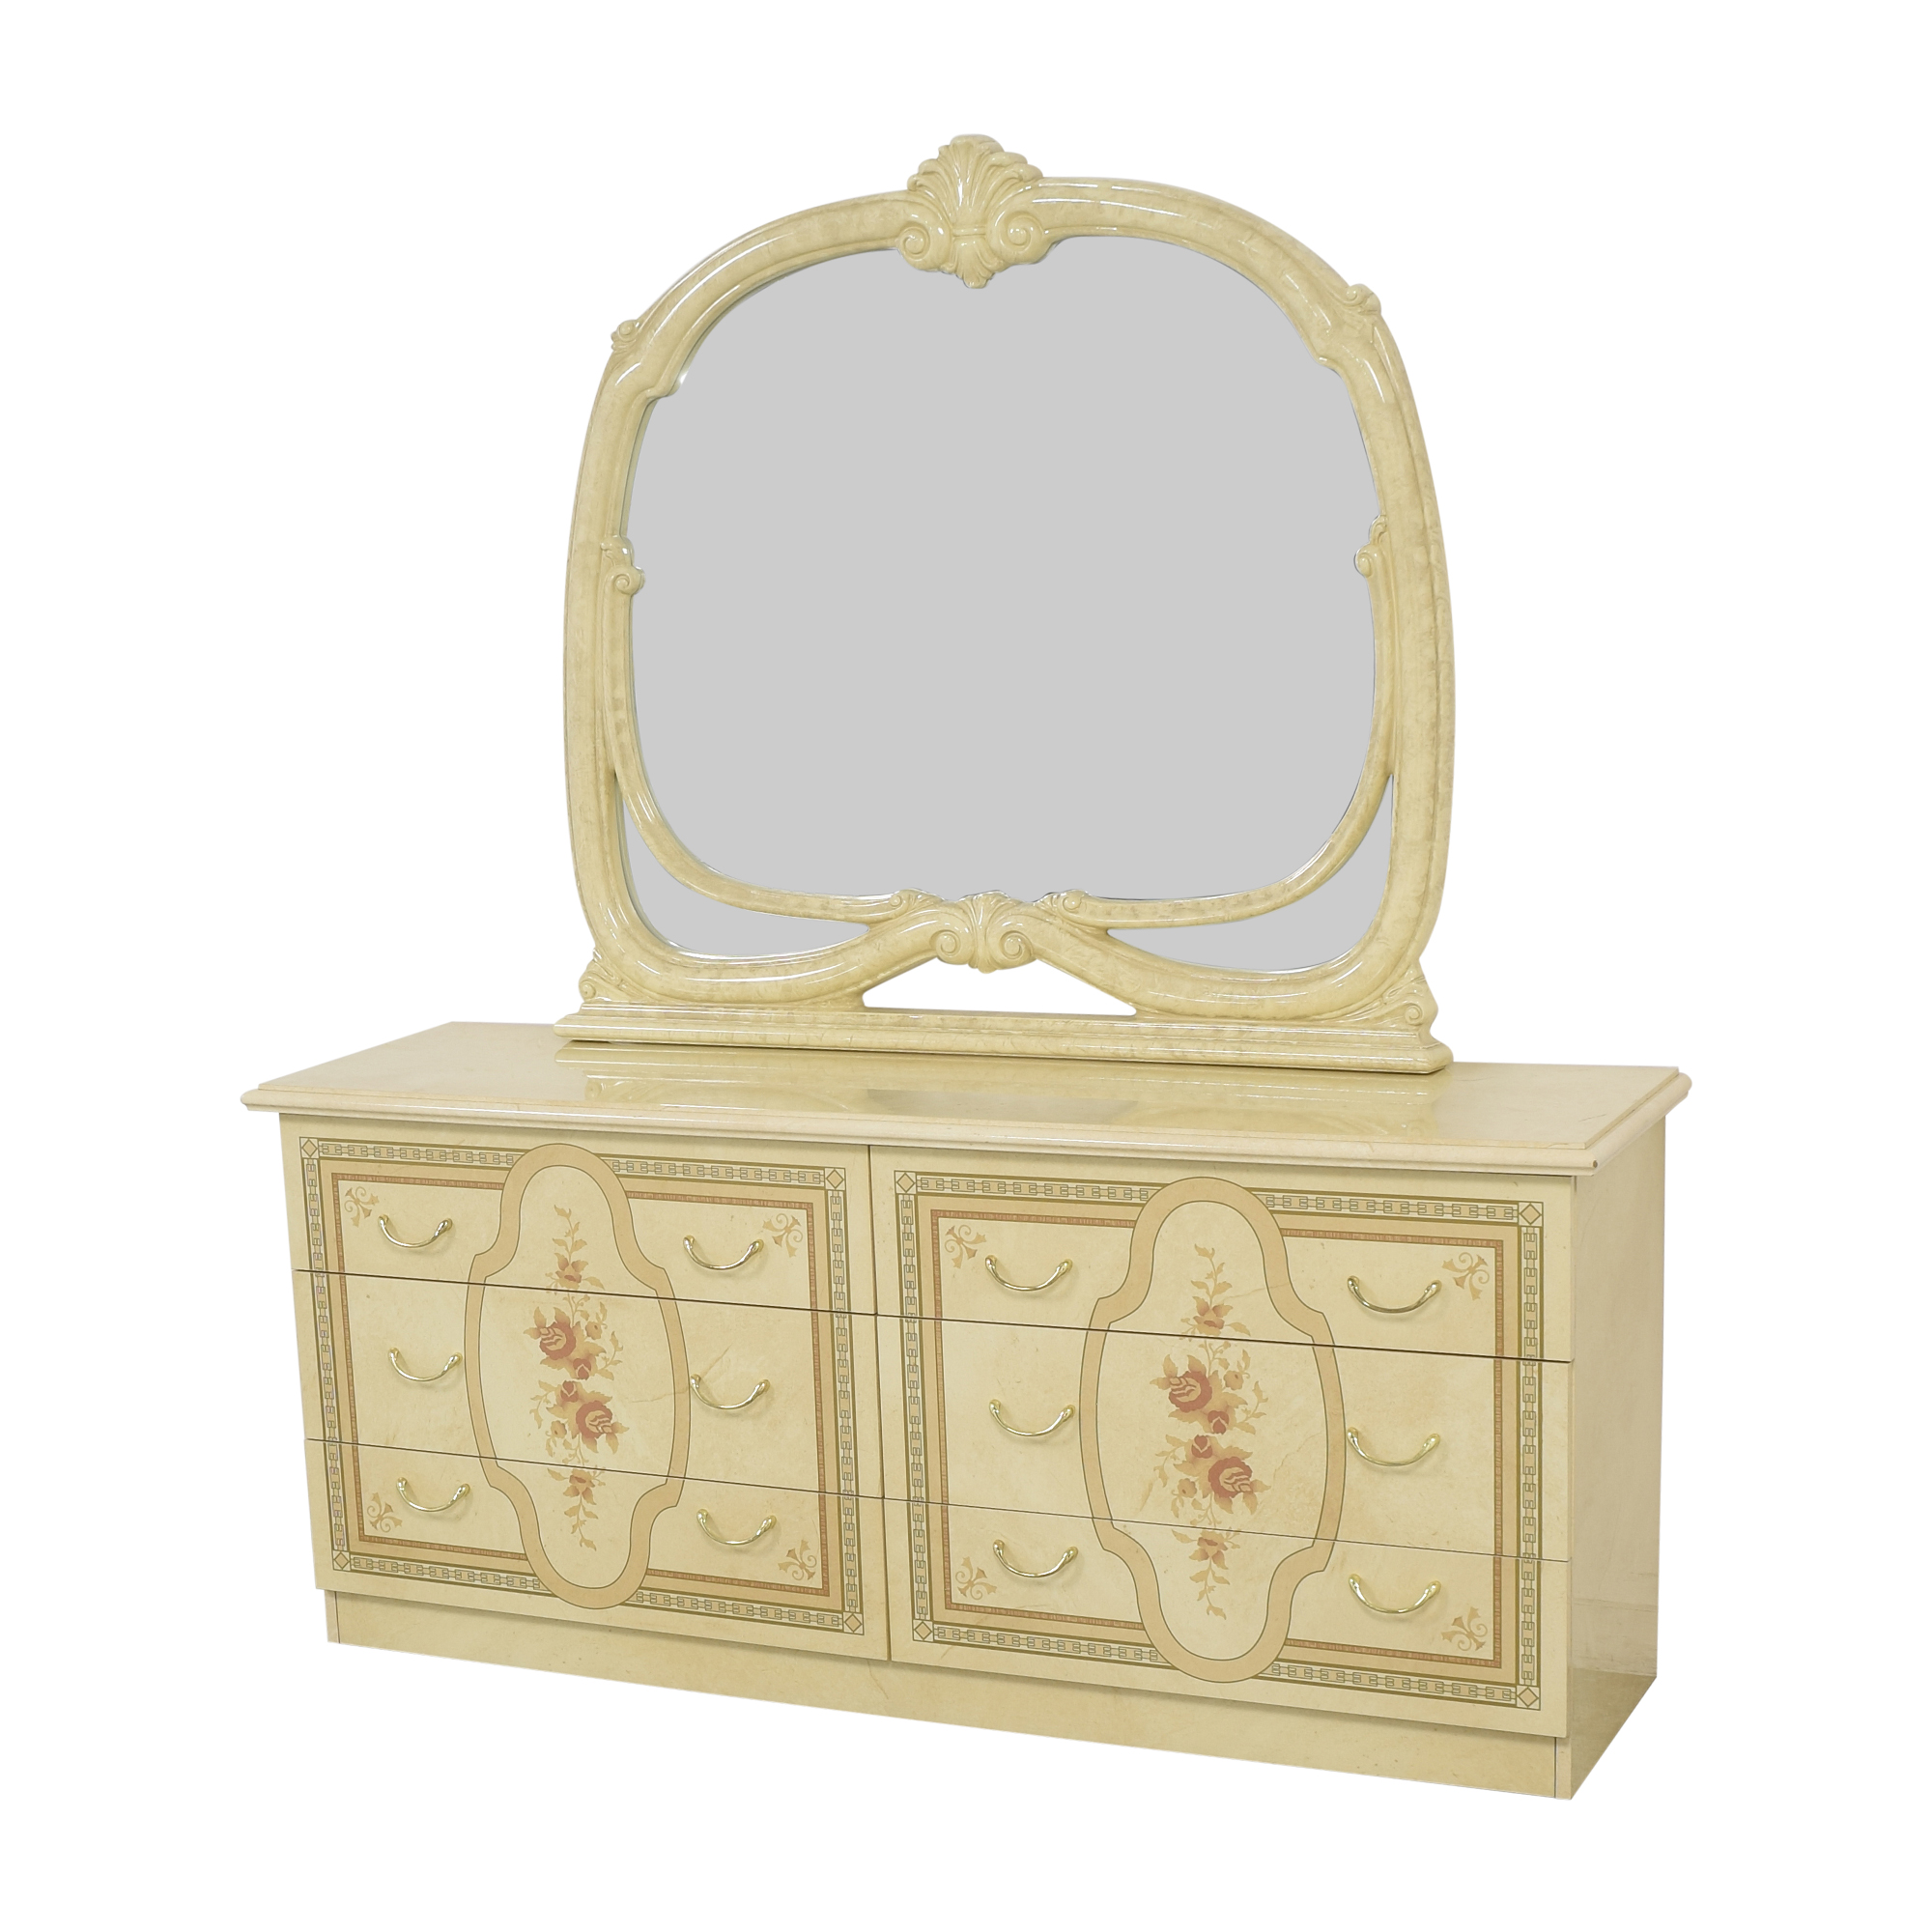 Roma Furniture Roma Furniture Dresser with Mirror nyc